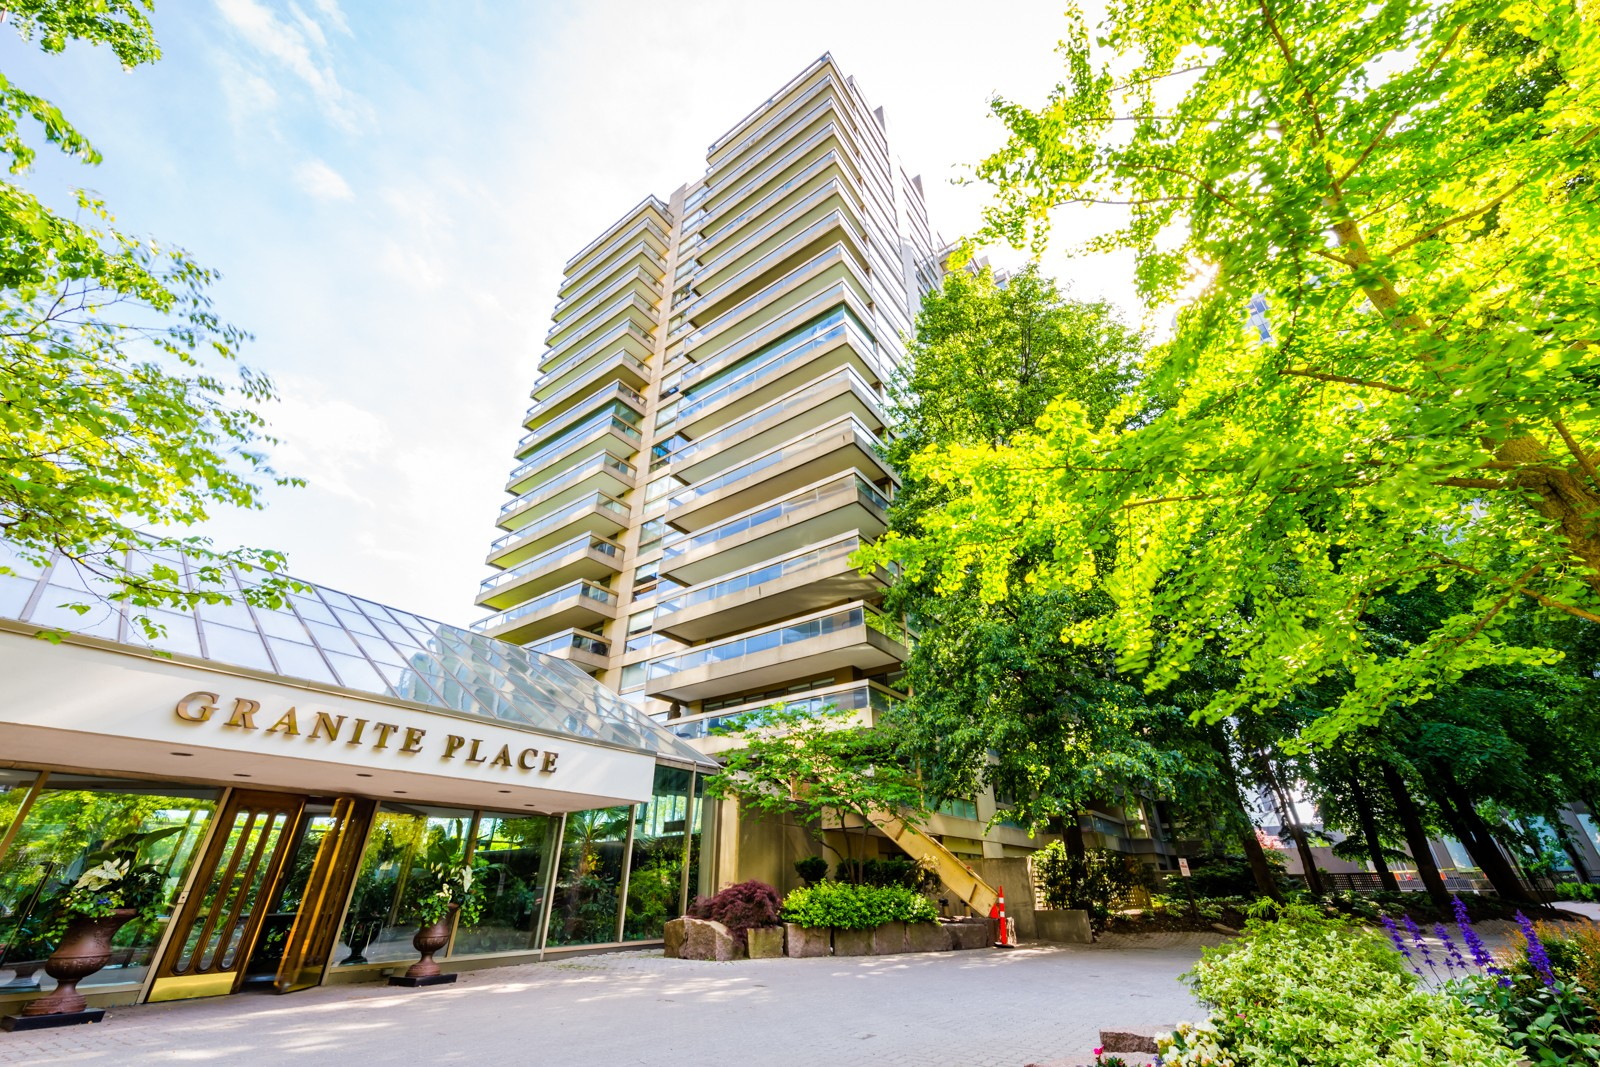 Granite Place at 61 St Clair Ave W, Toronto 1